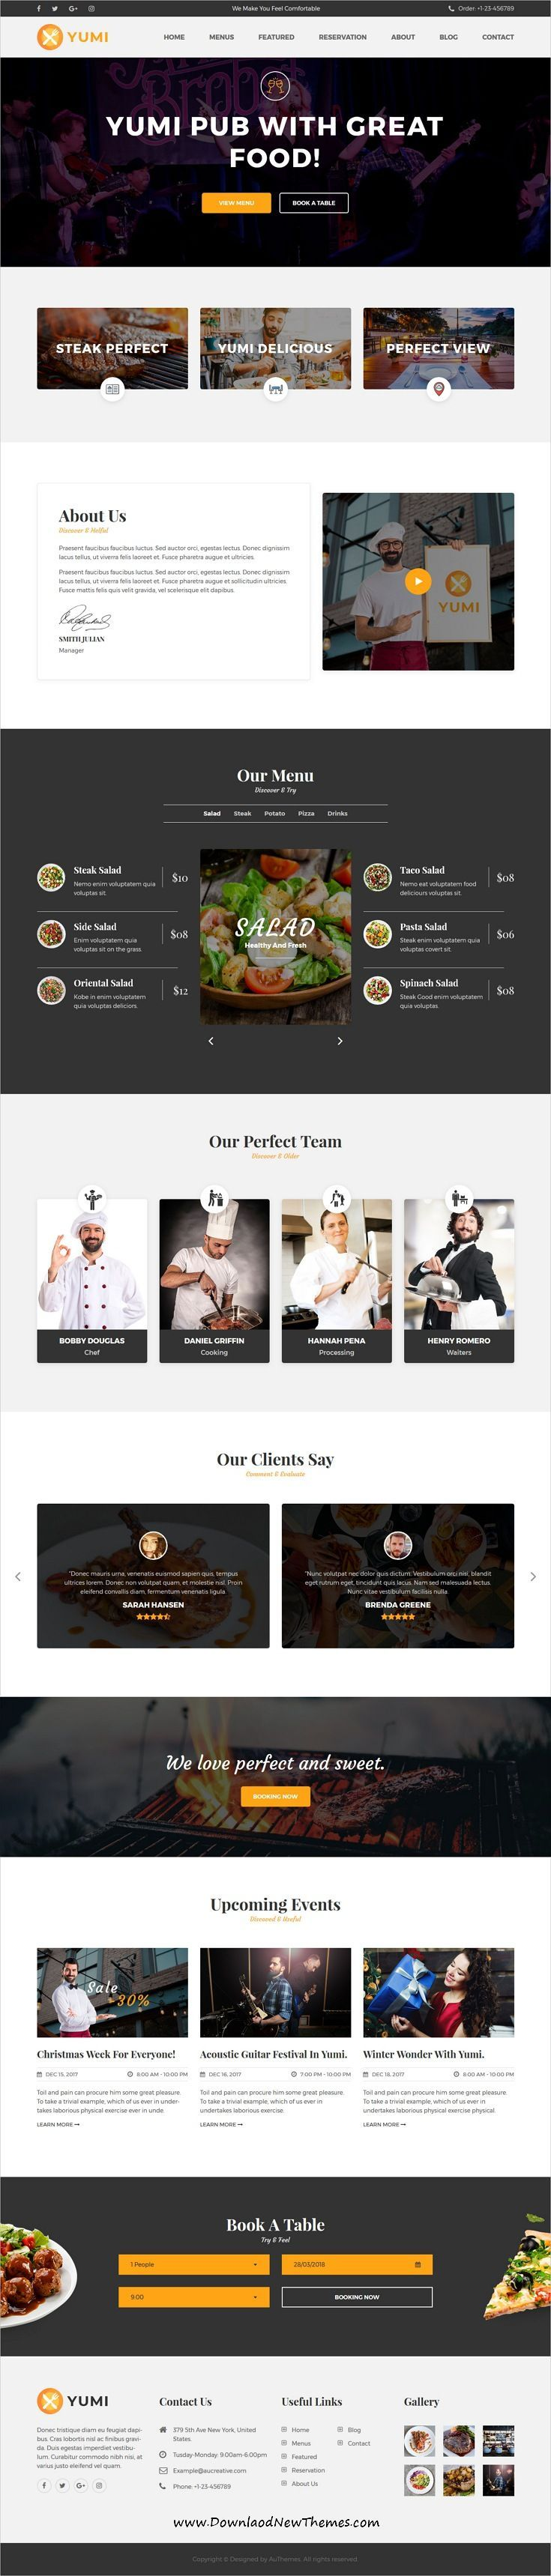 yumi is clean and modern design 3in1 responsive html5 bootstrap